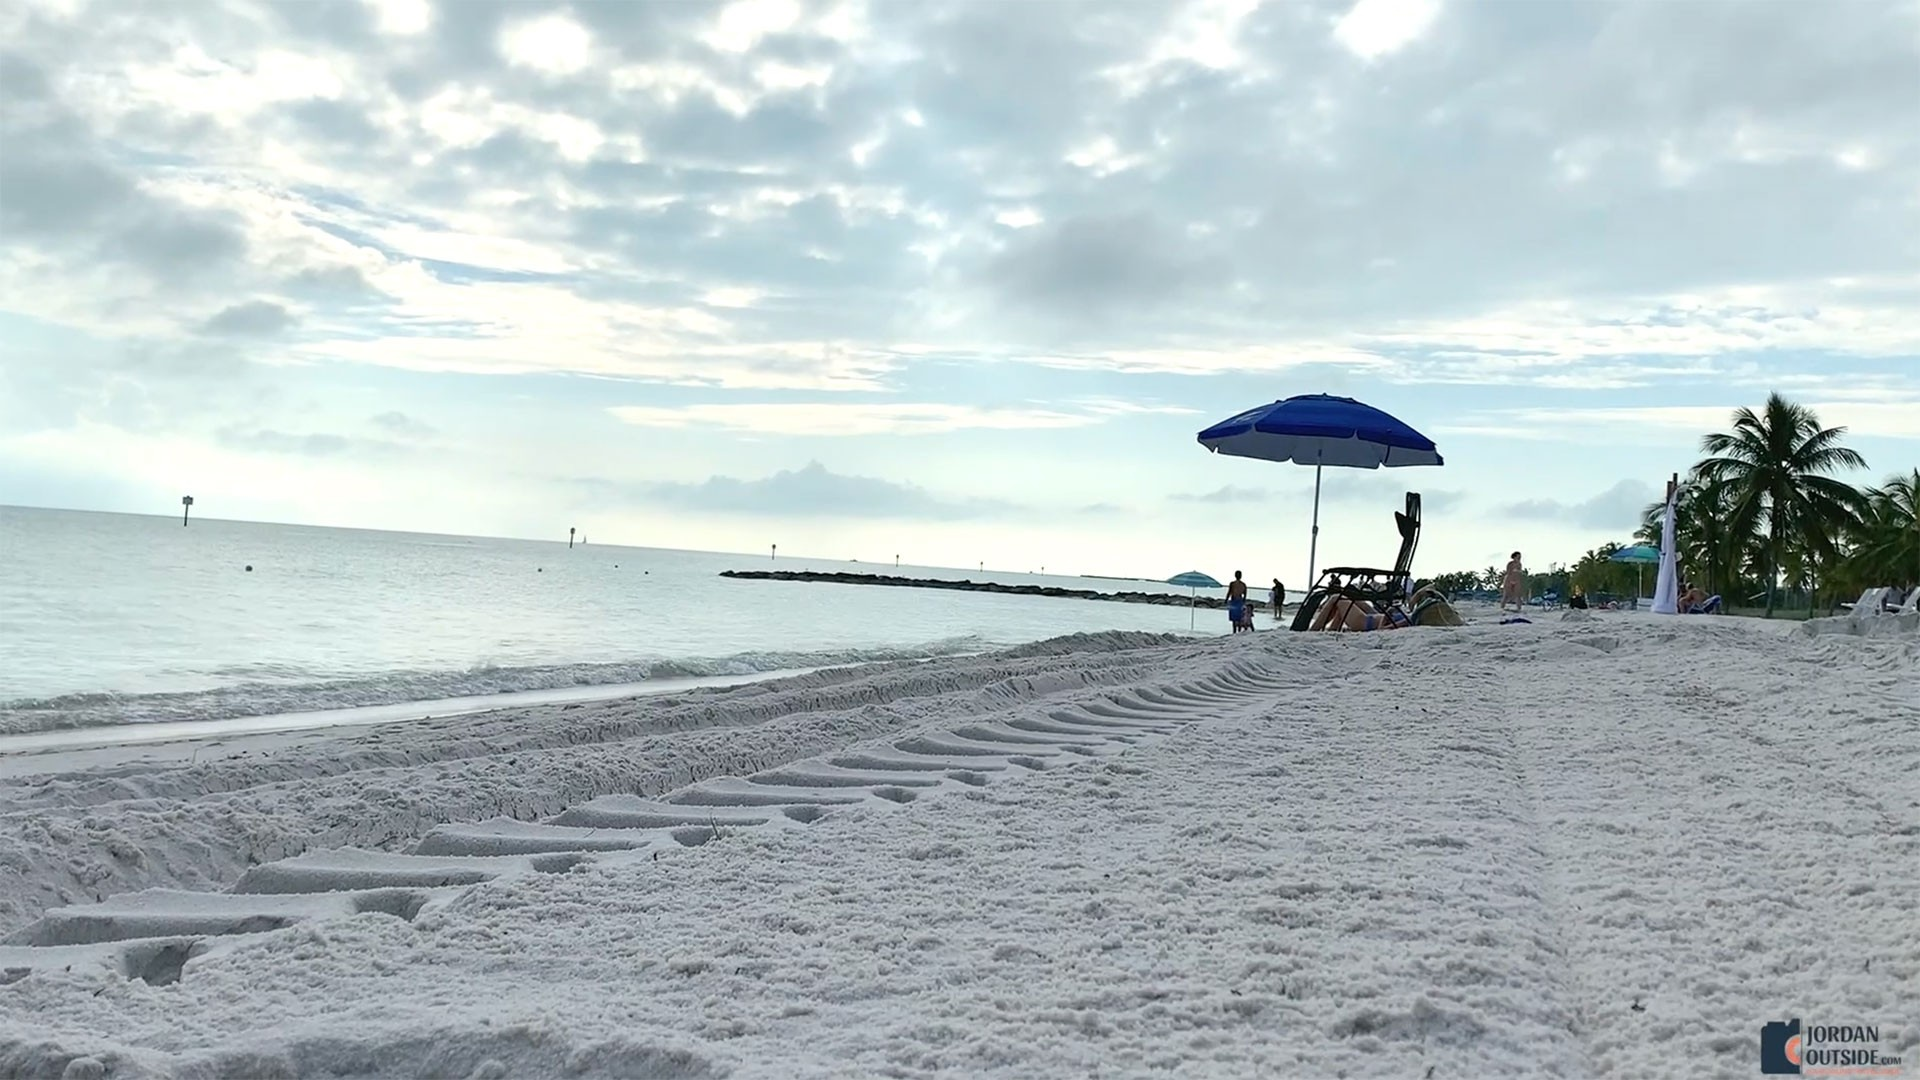 Smathers Beach in Key West, Florida